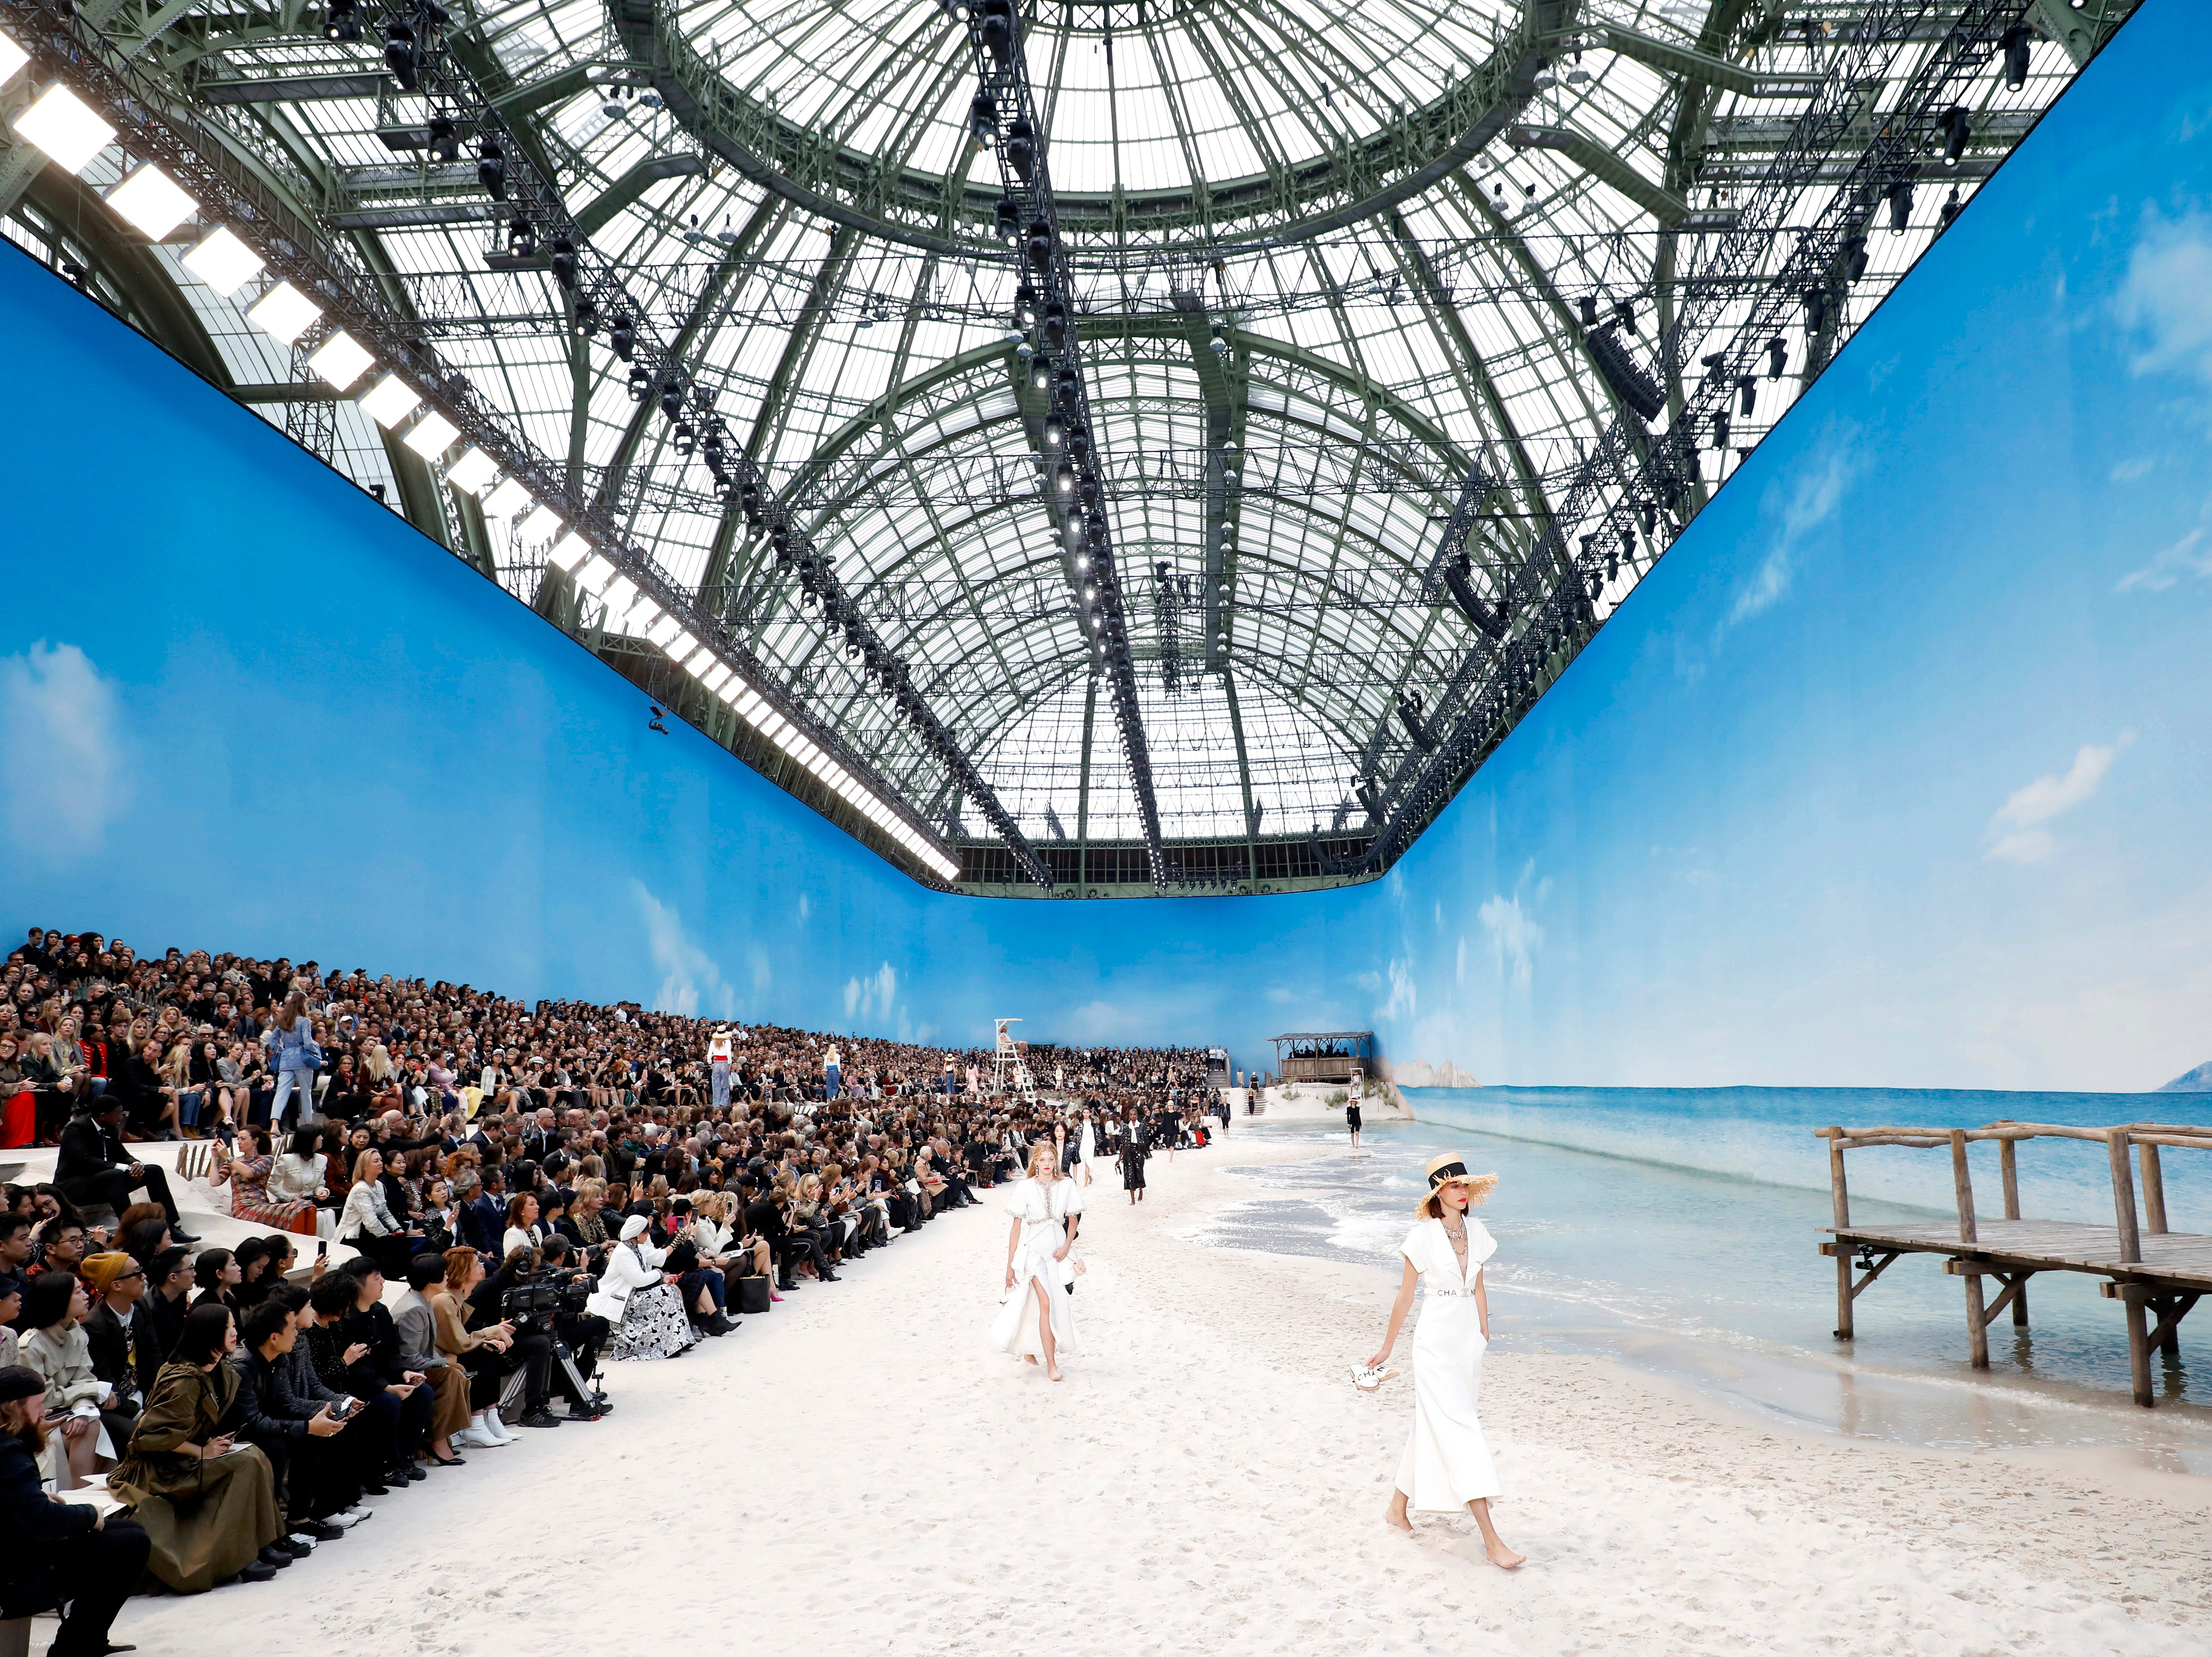 Models present creations from the Spring/Summer 2019 Women's collection by German designer Karl Lagerfeld for Chanel at the Grand Palais during Paris Fashion Week on Oct. 2, 2018.